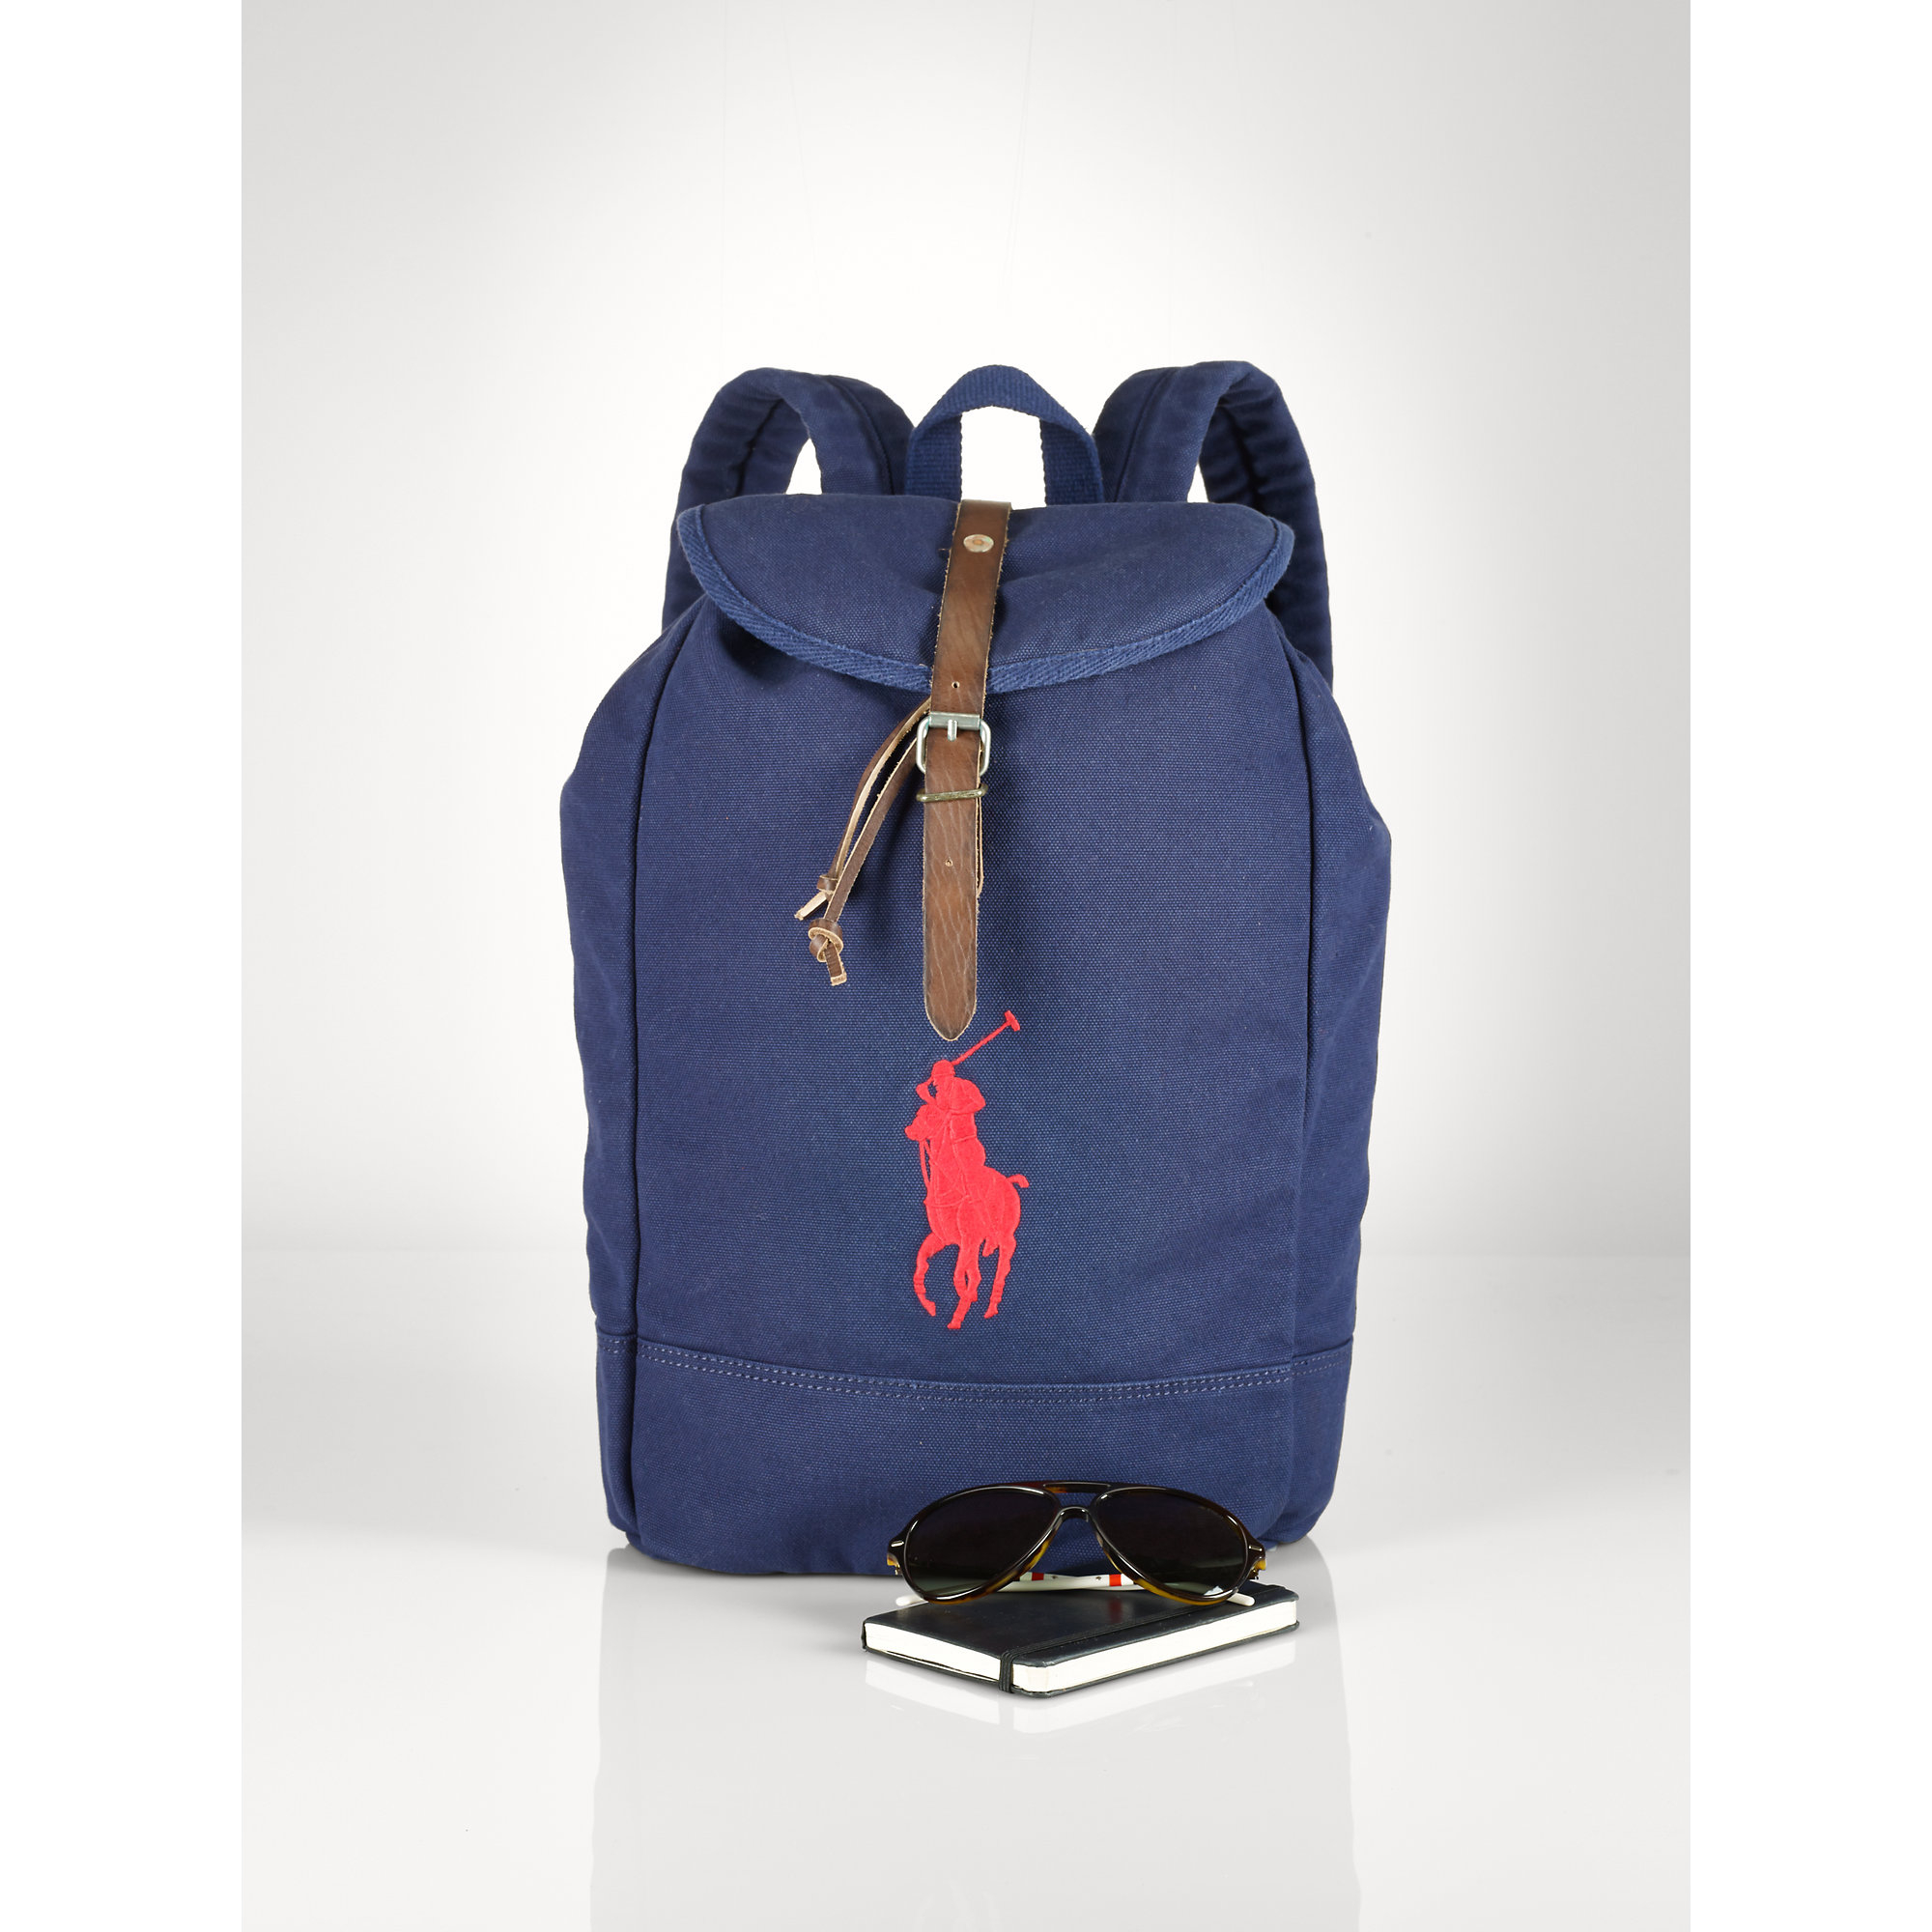 Lyst - Polo Ralph Lauren Big Pony Backpack in Blue for Men 7646a550445a5